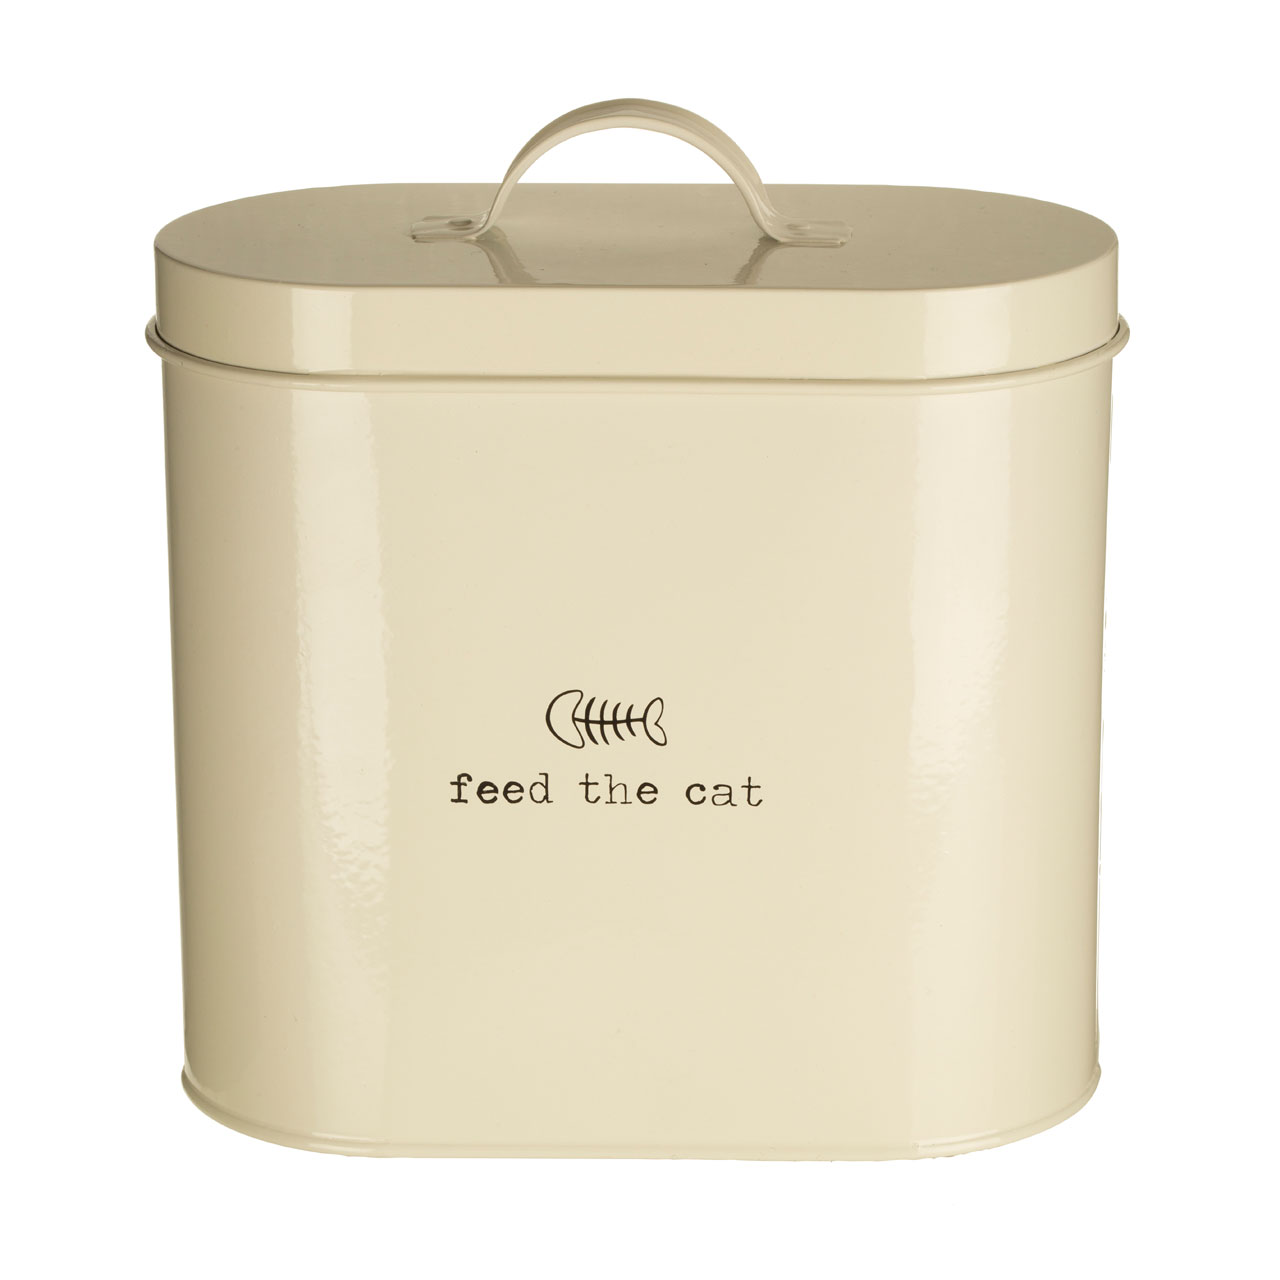 Adore Pets Feed The Cat Food Container Storage Bin u0026 Spoon 2.8 Litre Treats Can  sc 1 st  eBay & Adore Pets Feed The Cat Food Container Storage Bin u0026 Spoon 2.8 Litre ...